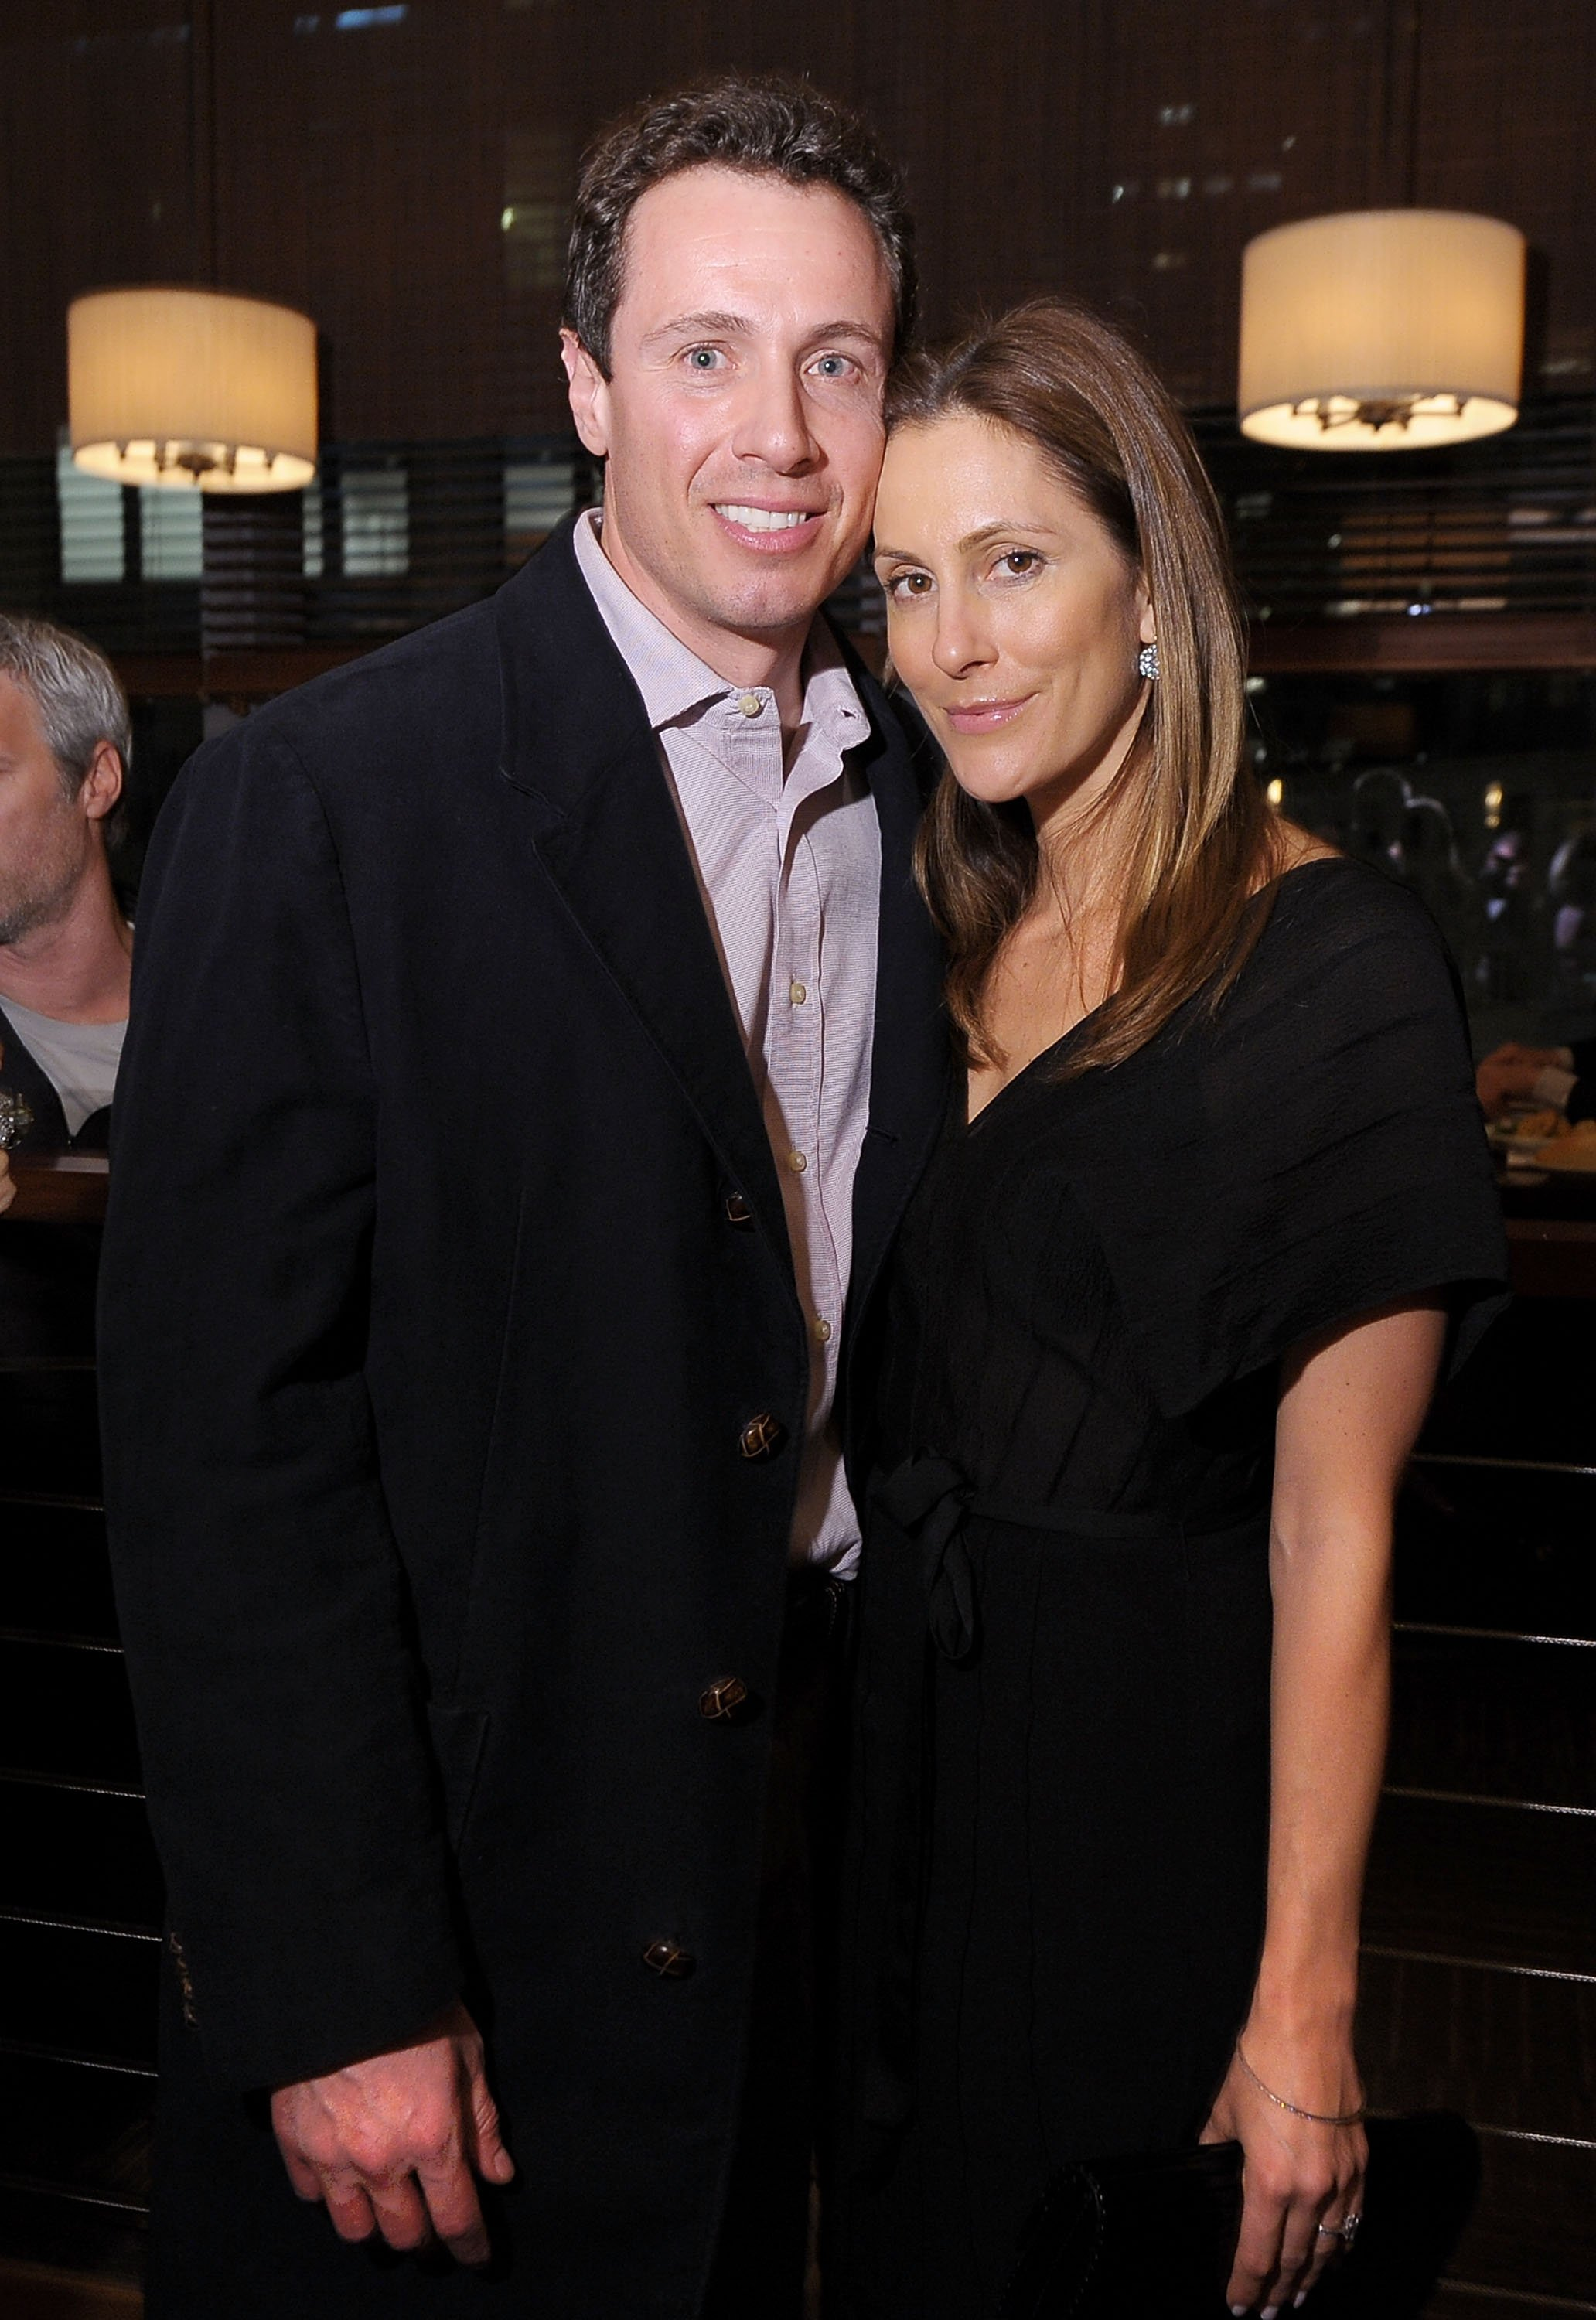 """Chris Cuomo and wife Cristina Greeven Cuomo attend the screening of """"His Way"""" on March 30, 2011, in New York City. 